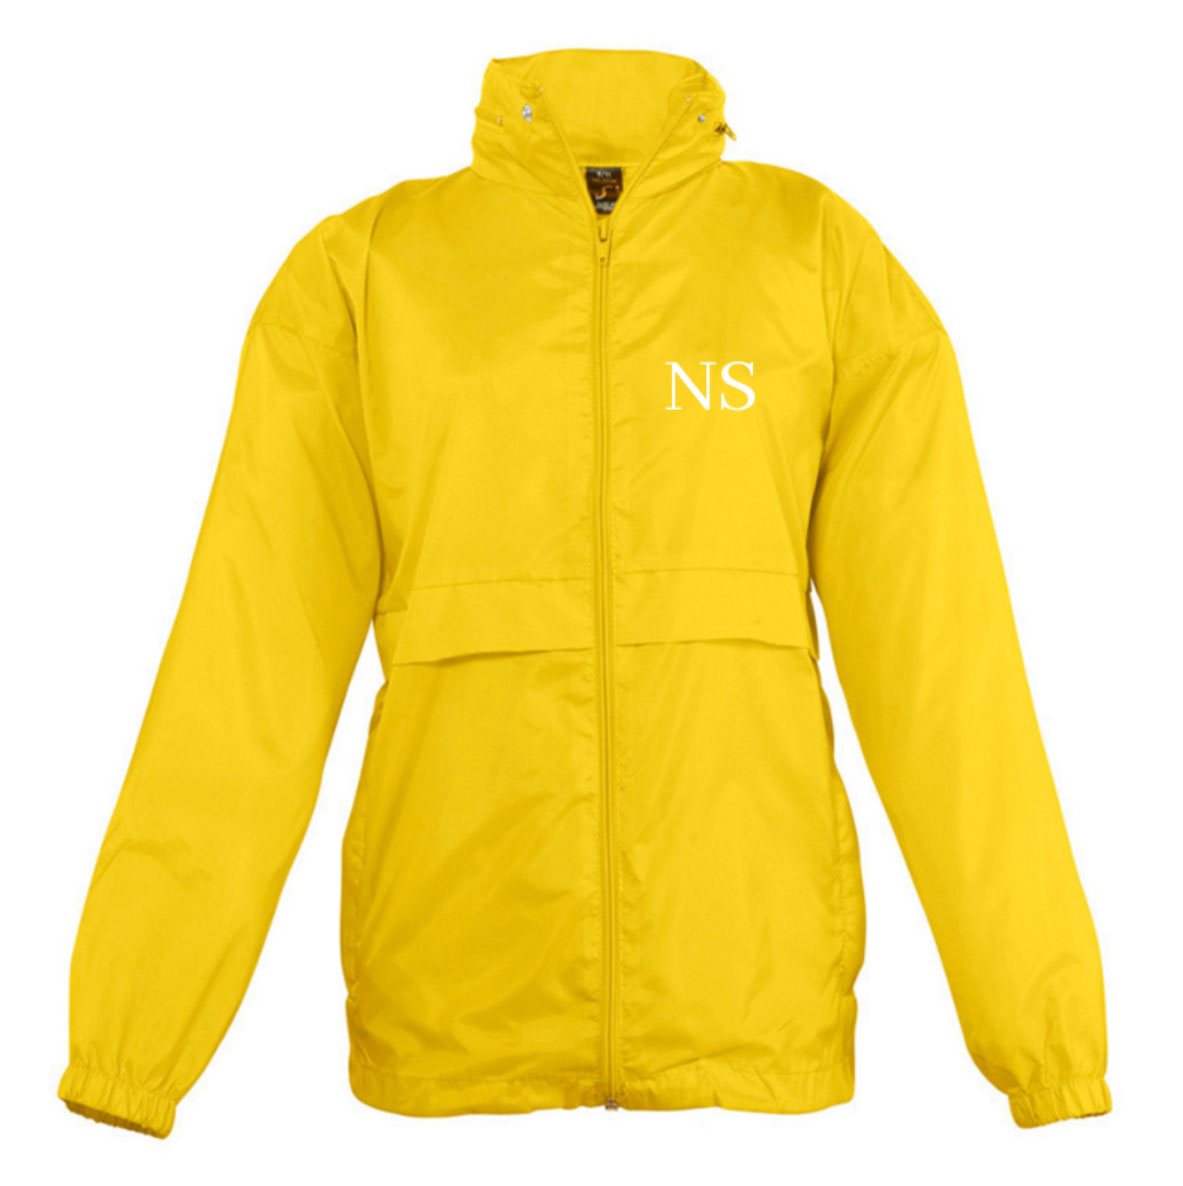 Embroidered Yellow Windbreaker Jacket